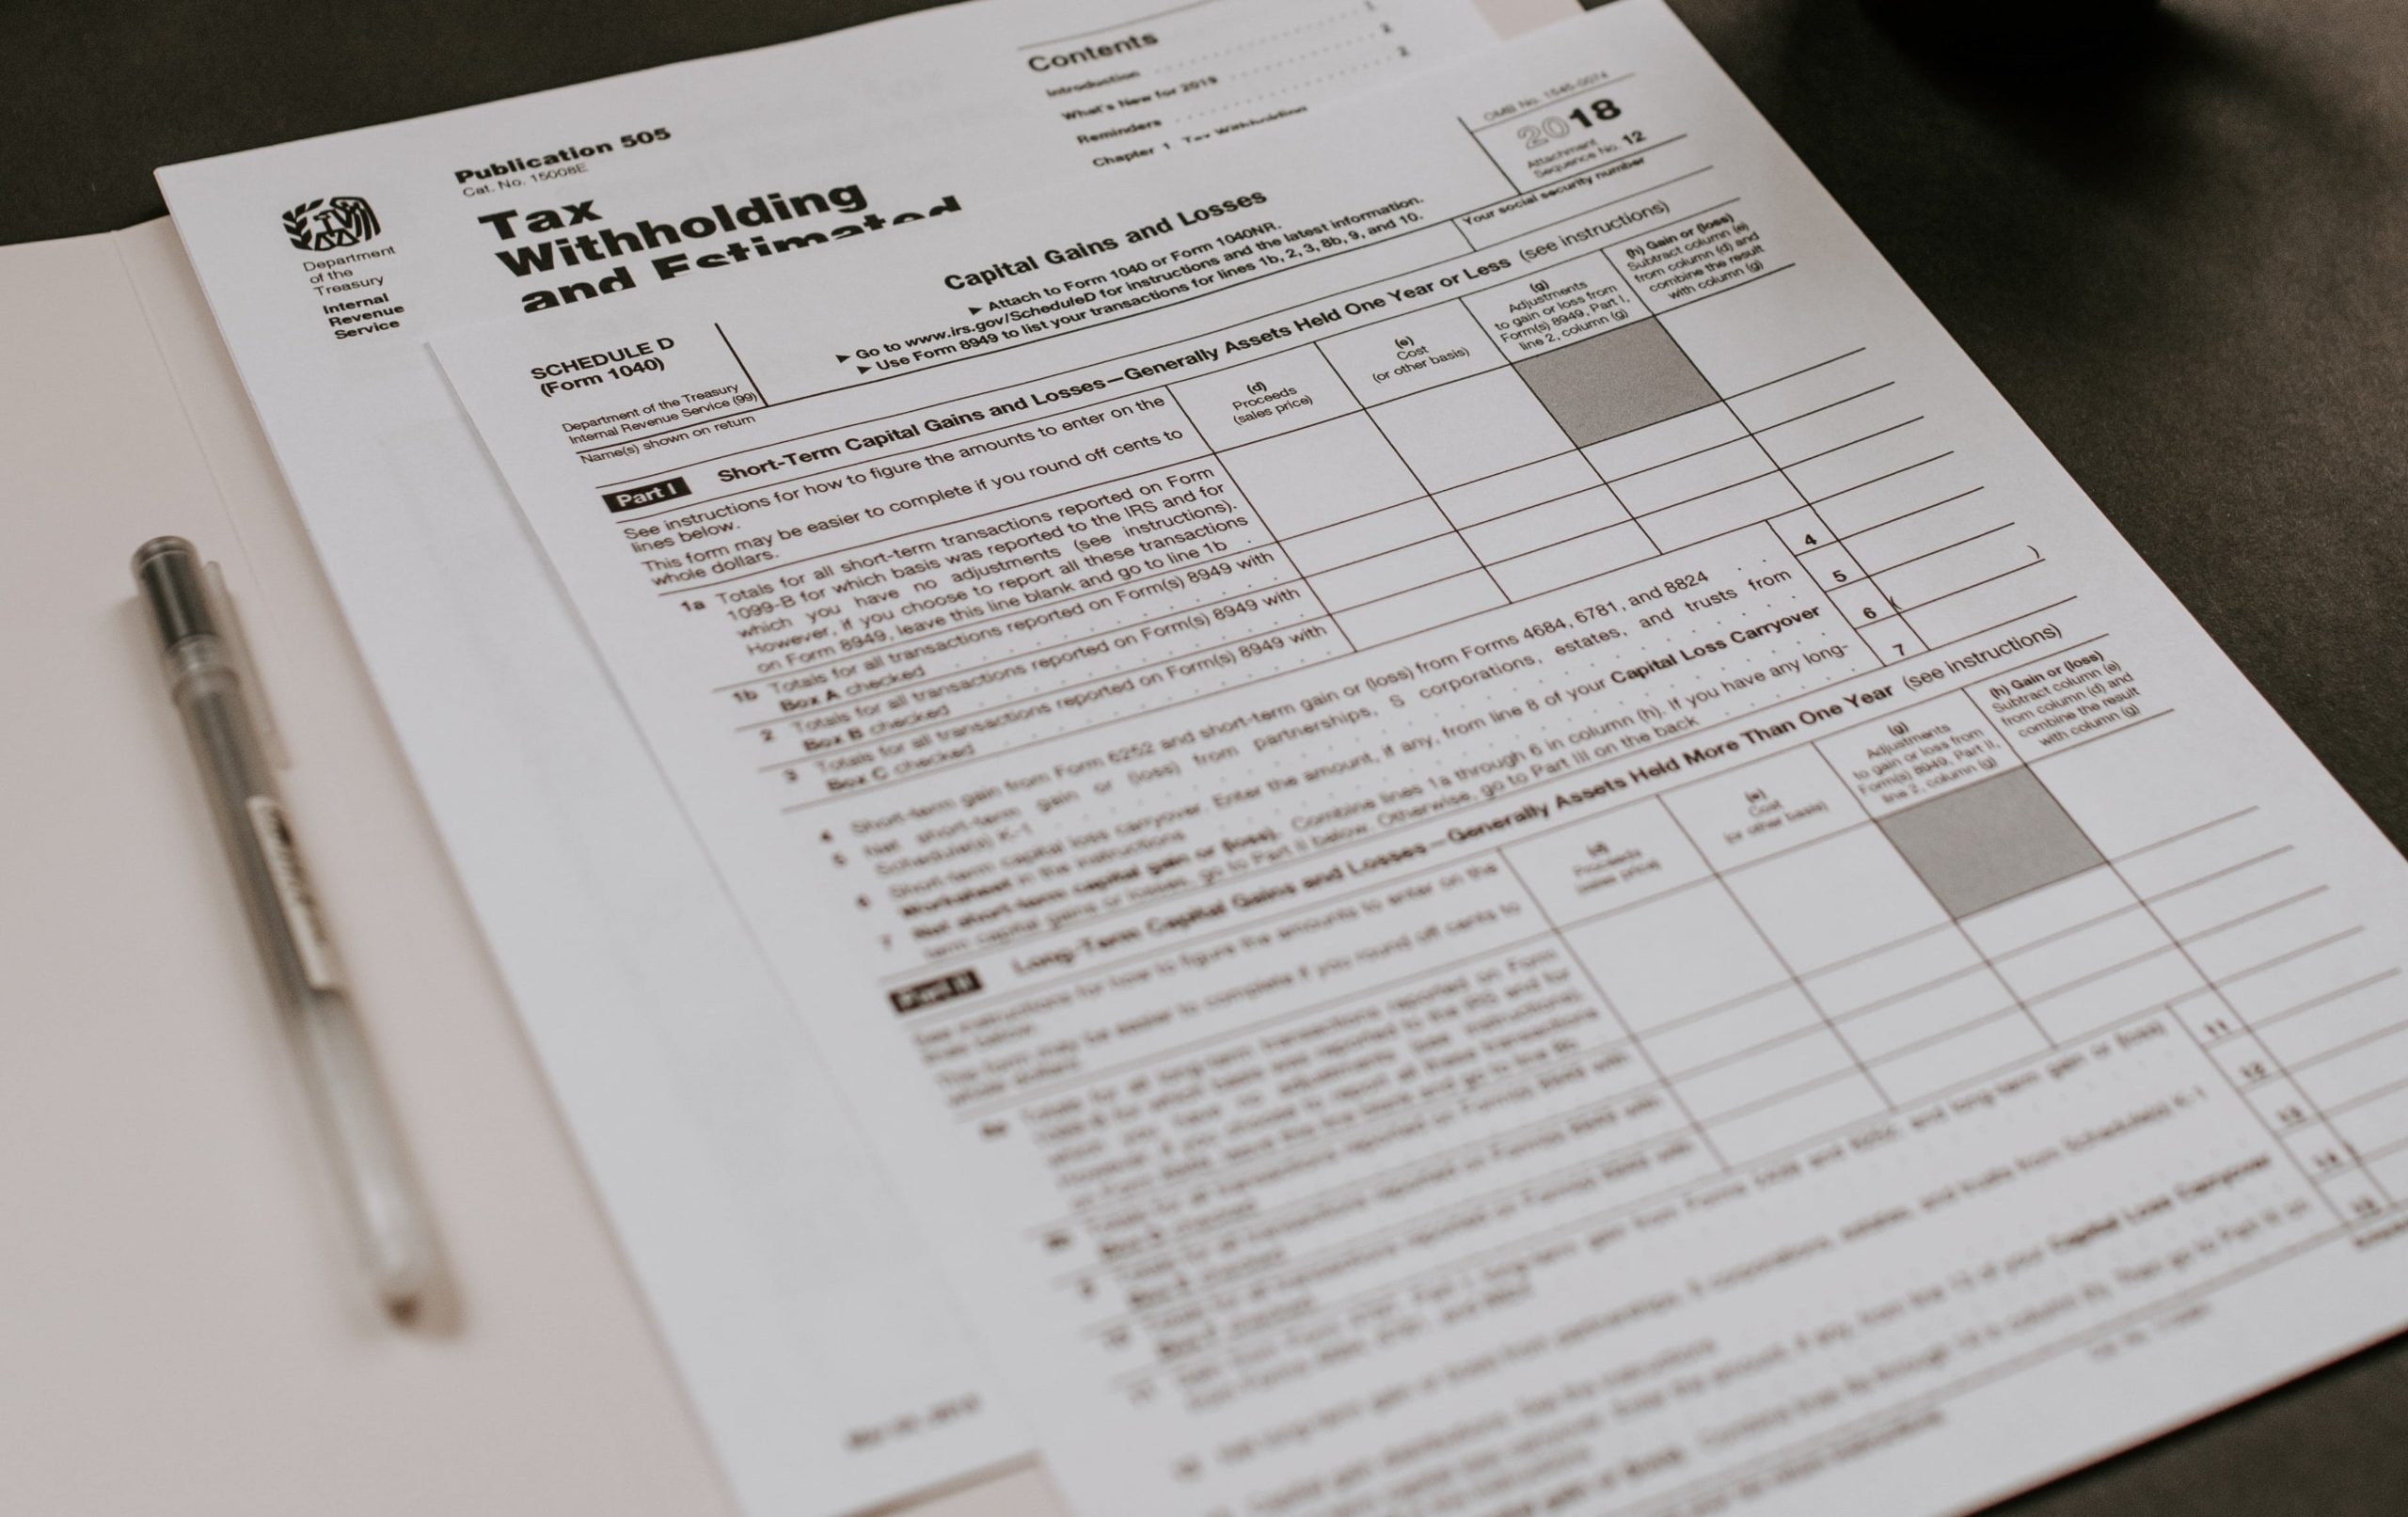 Inflation Adjustments From IRS for 2020